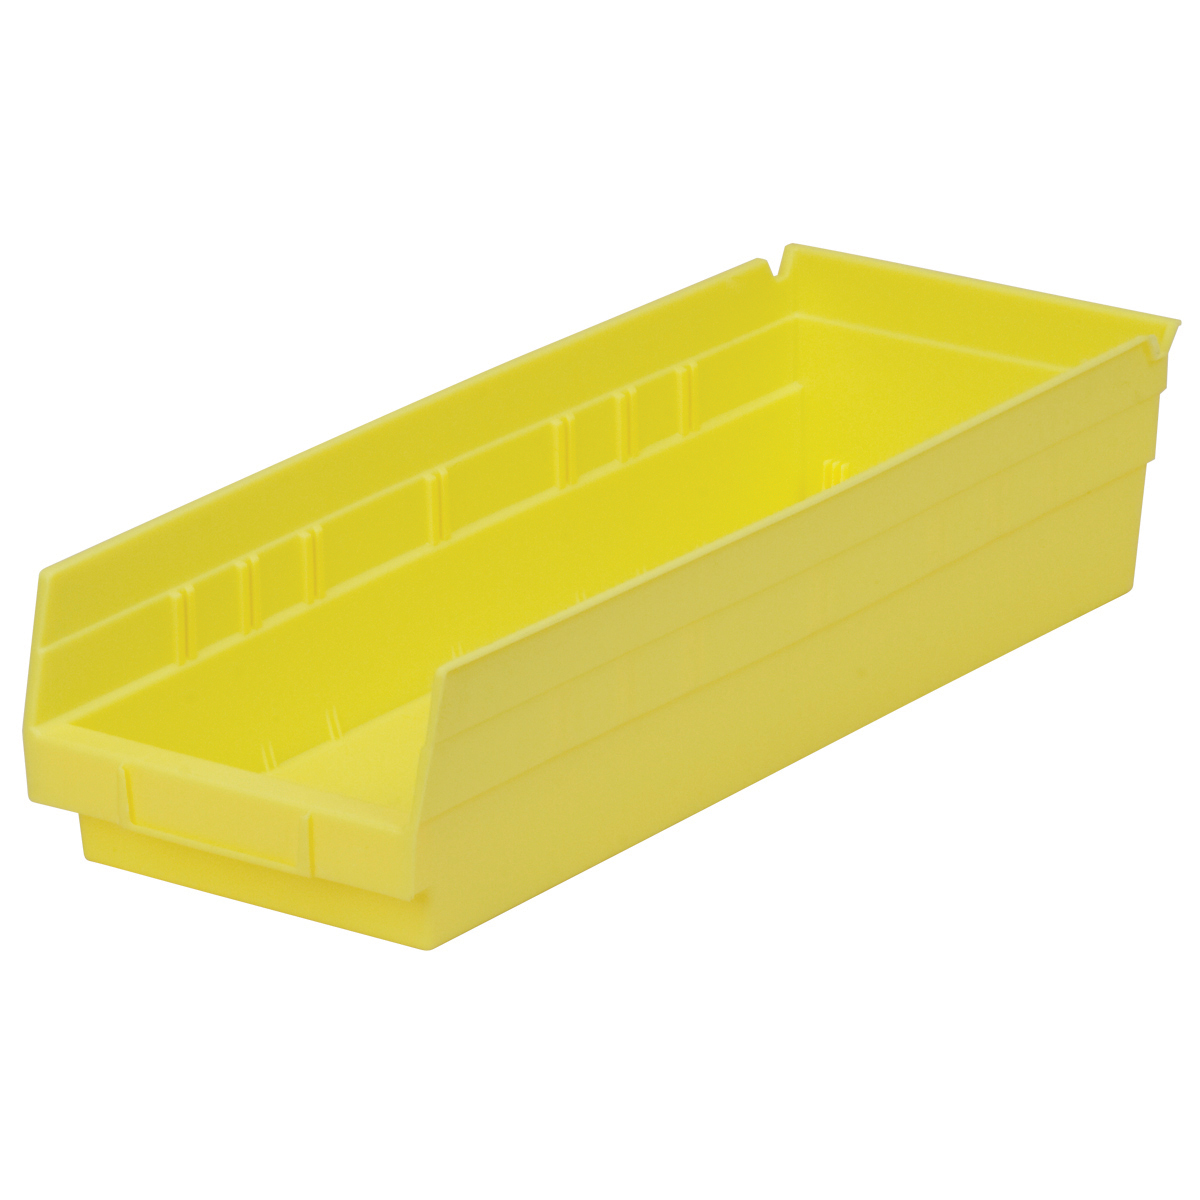 Shelf Bin 17-7/8 x 6-5/8 x 4, Yellow (30138YELLO).  This item sold in carton quantities of 12.